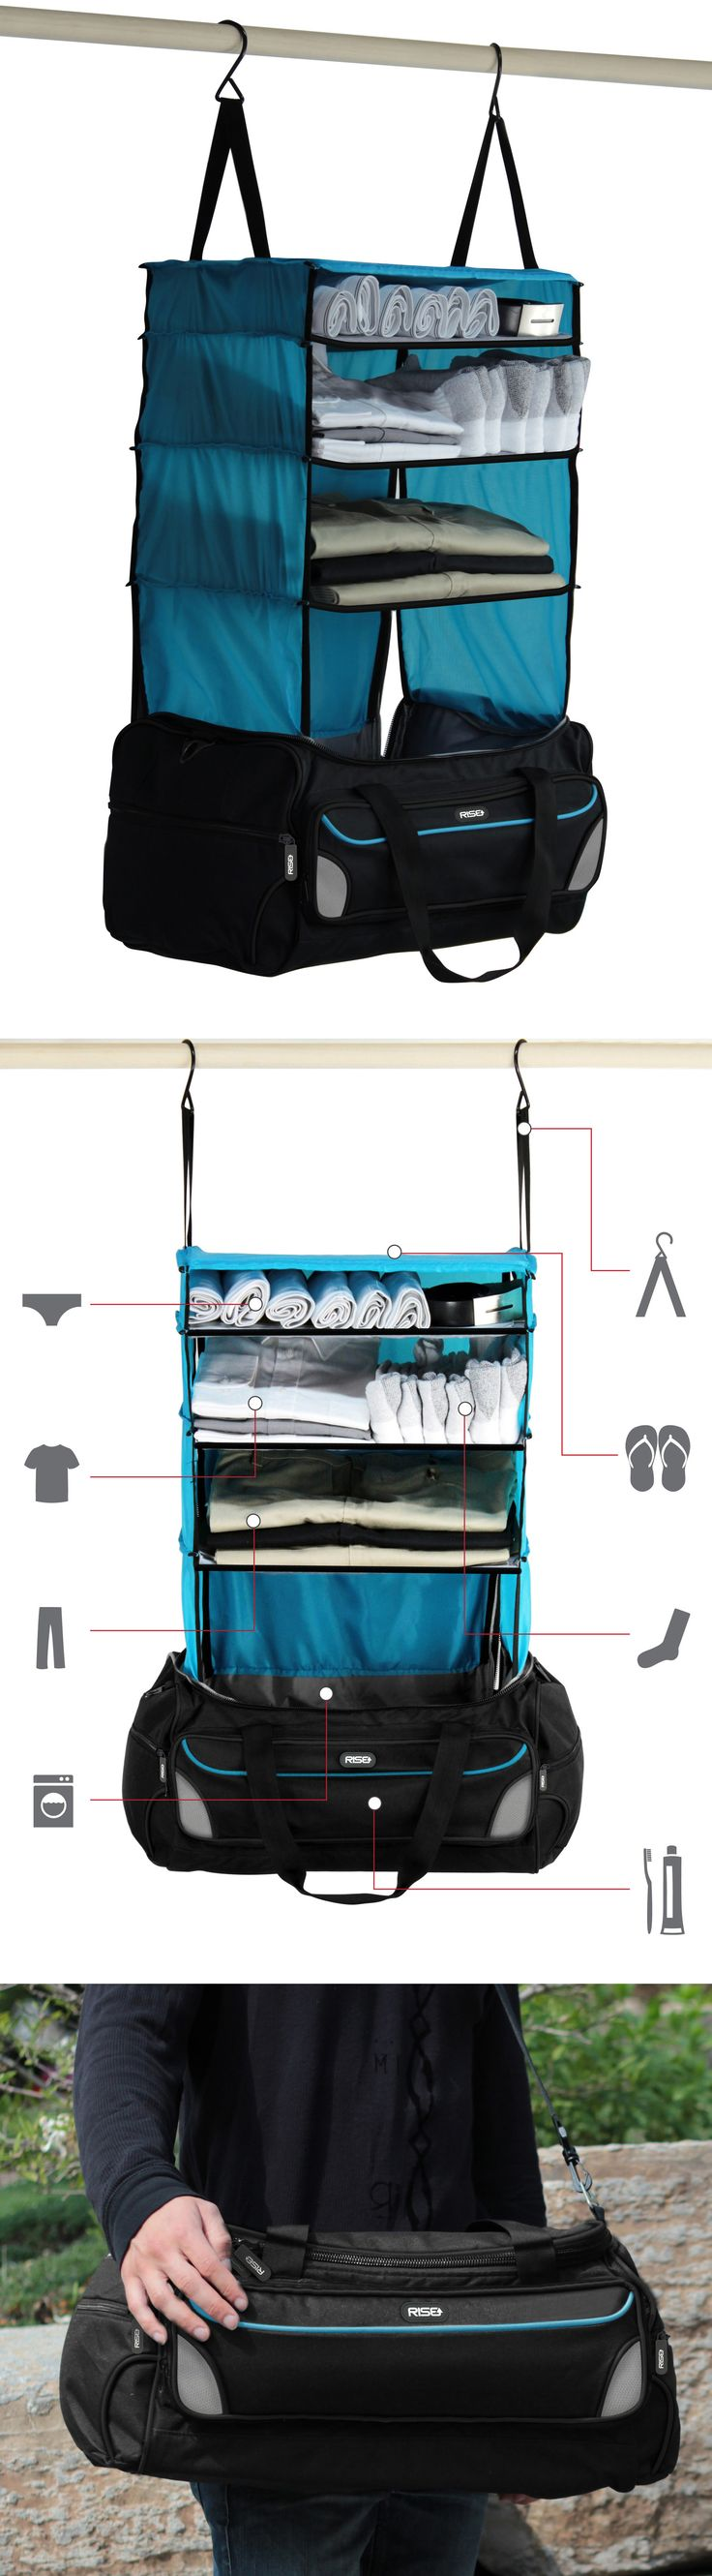 Rise and Hang // Forget unpacking, this clever weekender bag has built-in hanger shelves! Genius - I NEED this for travelling!